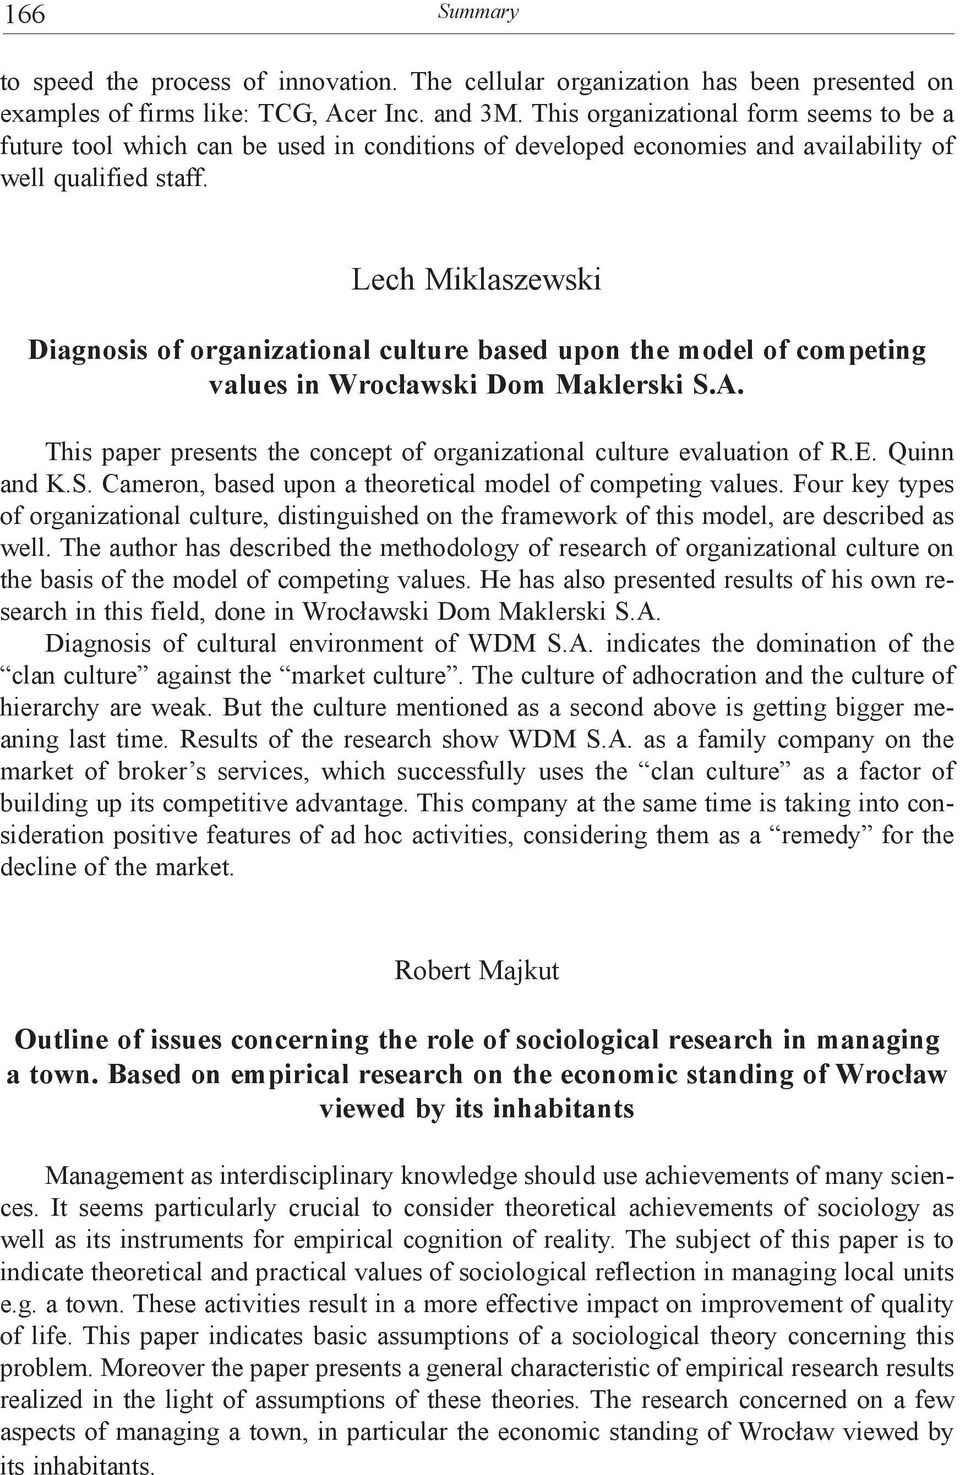 Lech Miklaszewski Diagnosis of organizational culture based upon the model of competing values in Wrocławski Dom Maklerski S.A.